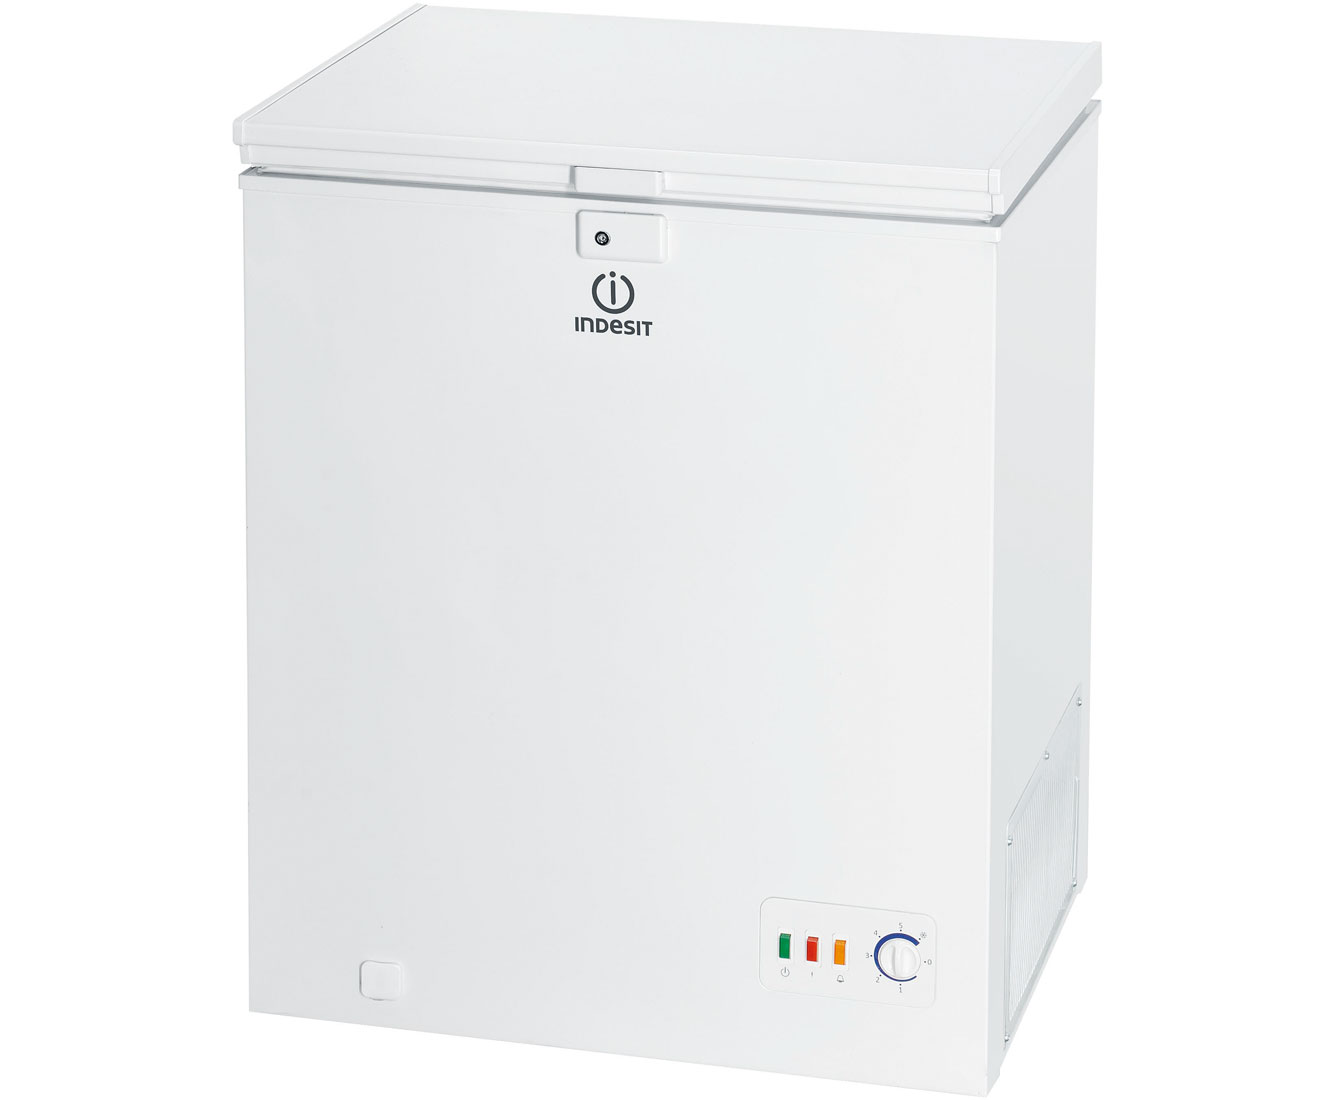 Indesit OFAA100M Chest Freezer - White